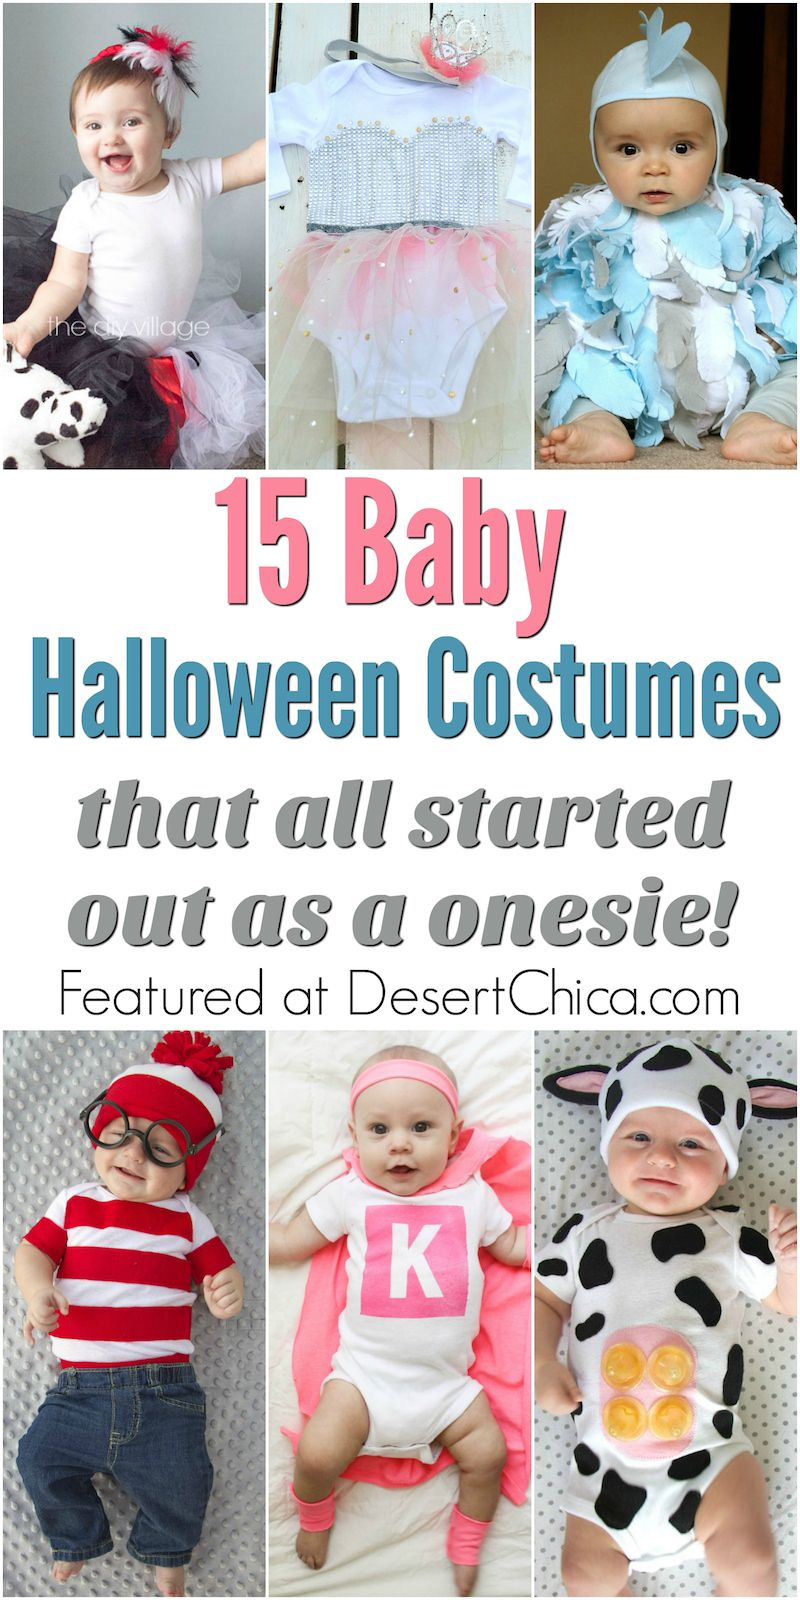 adorable baby costumes from a onesie | halloween costumes